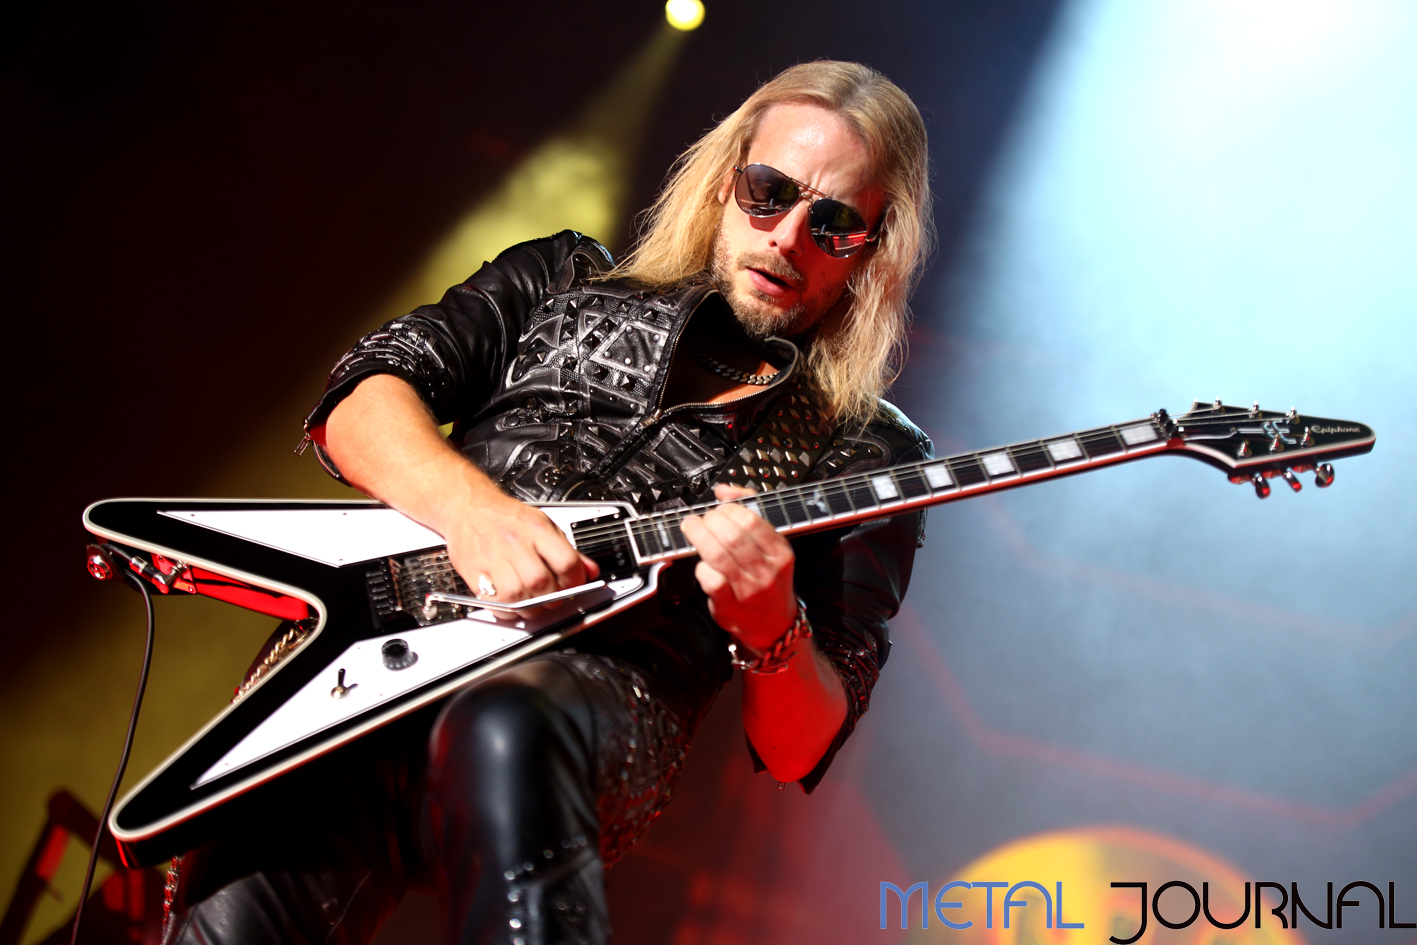 judas priest - metal journal barakaldo 2018 pic 3